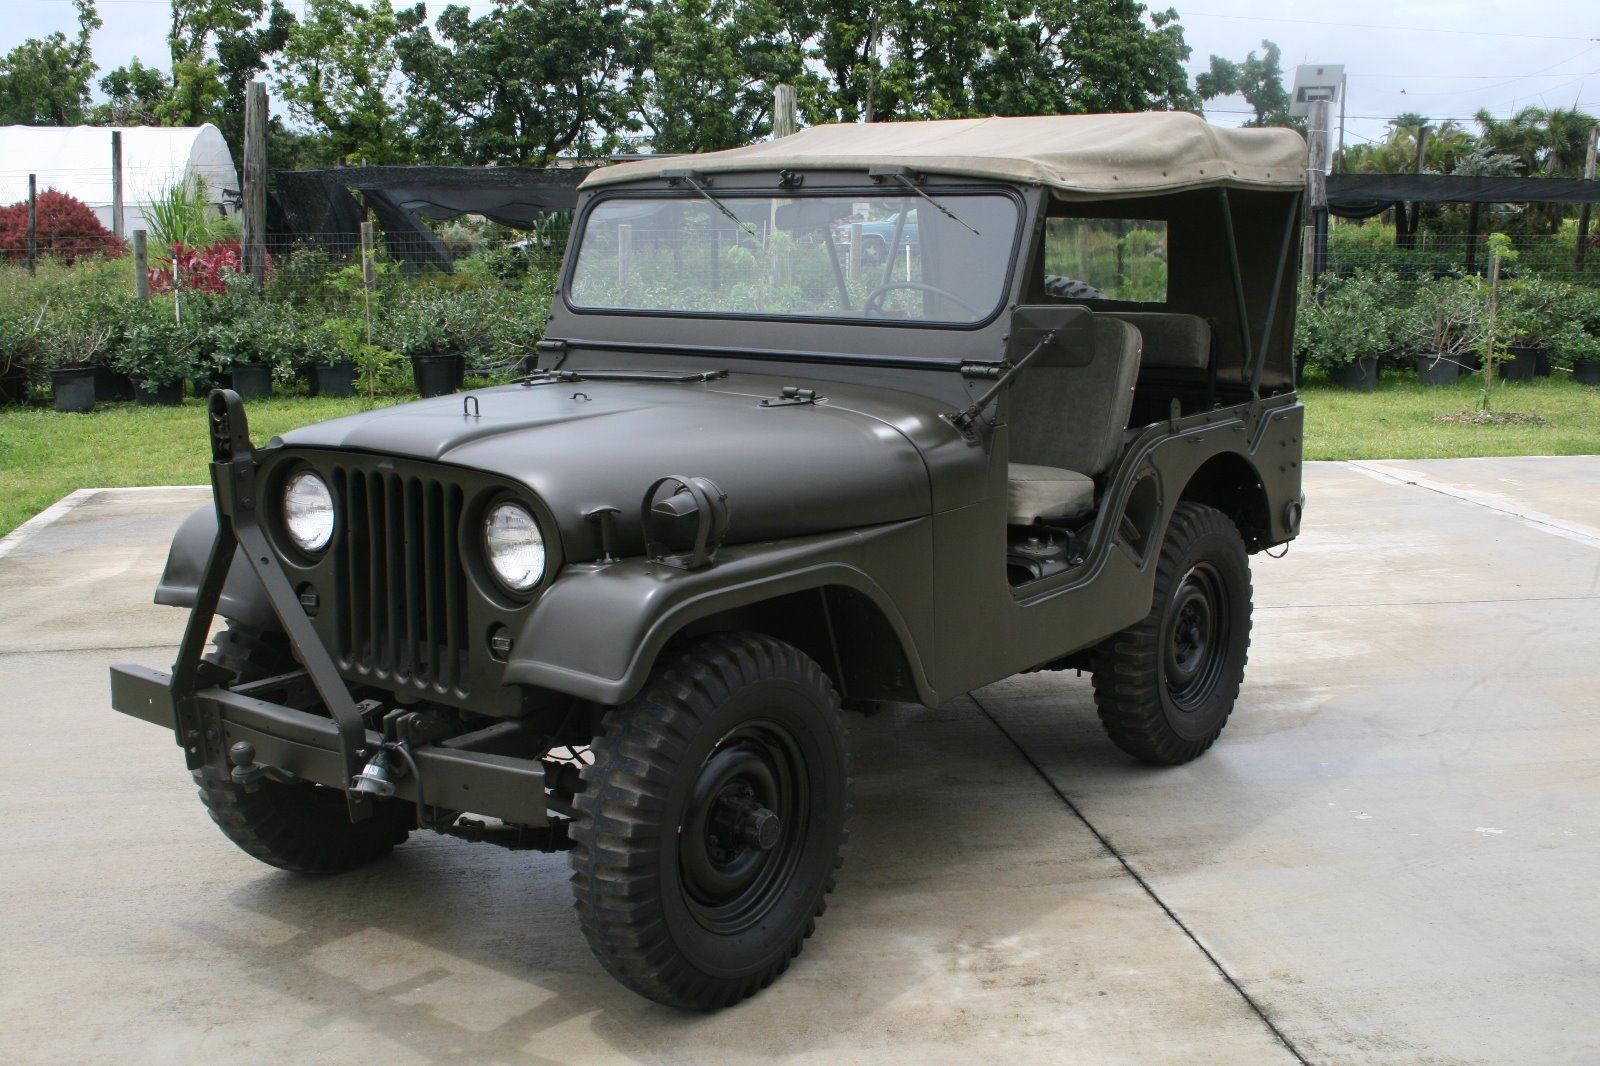 hight resolution of movie car 1953 willys jeep m38a1 military